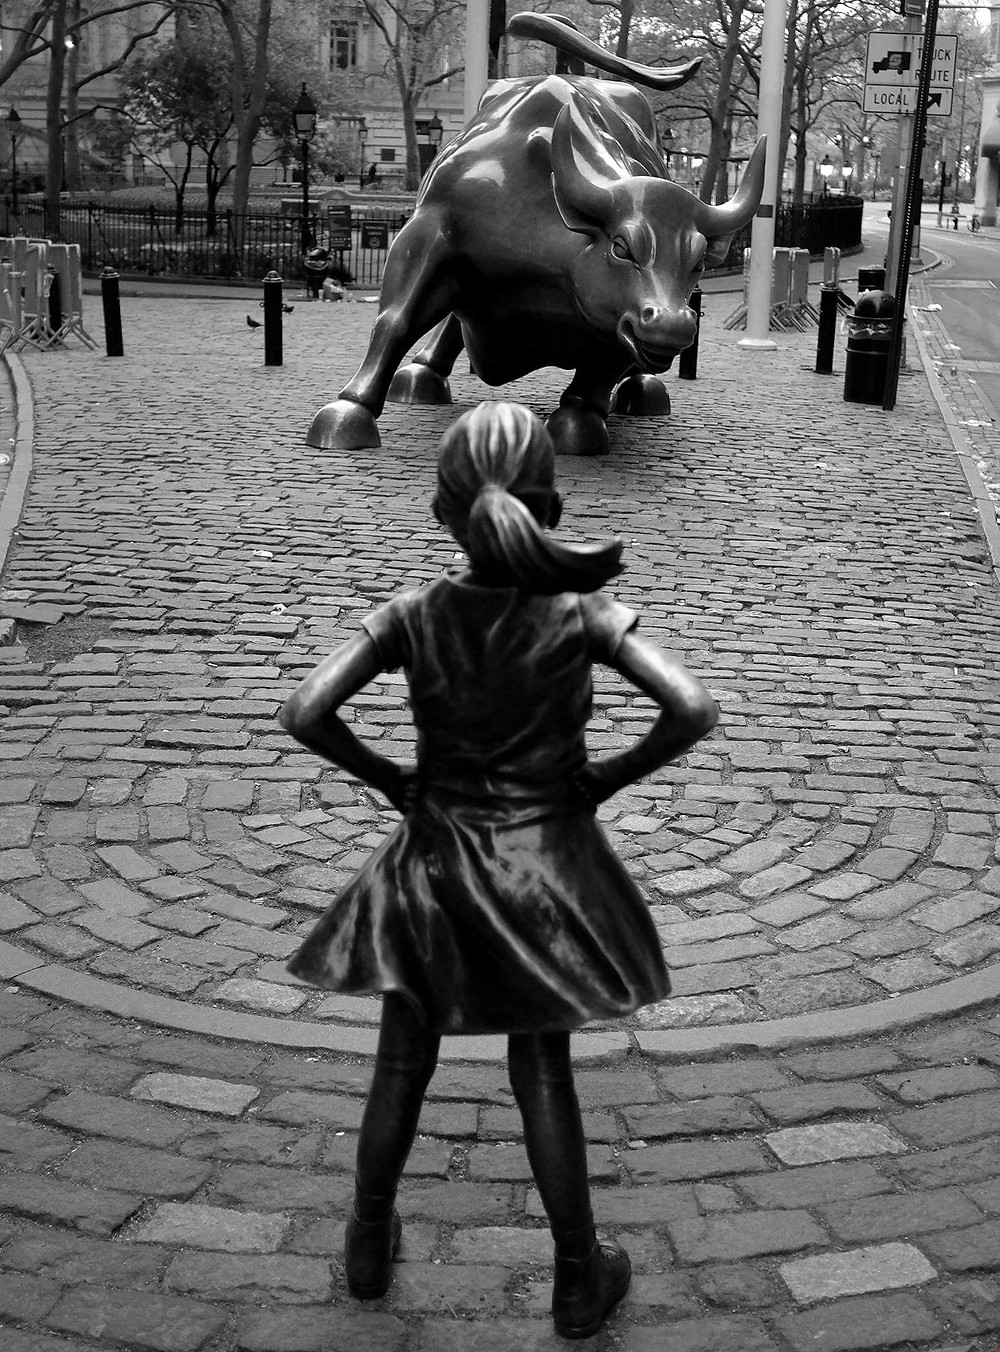 Fearless Girl. Photo by Paul Bilodeau.